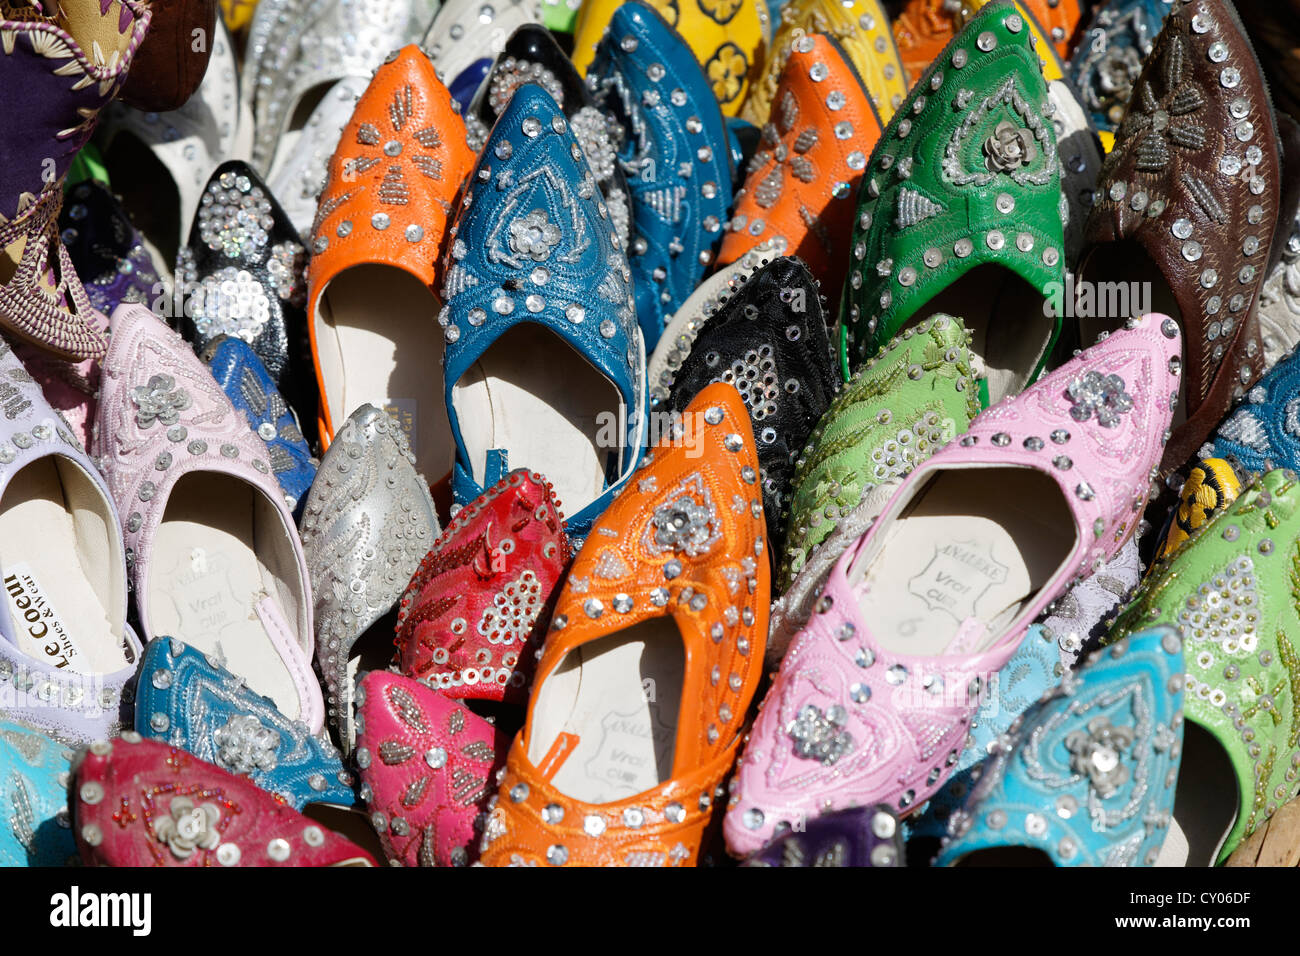 Souvenir, shoe sales in the market, souk in the medina, historic district of Essaouira, region of Marrakech-Tensift - Stock Image